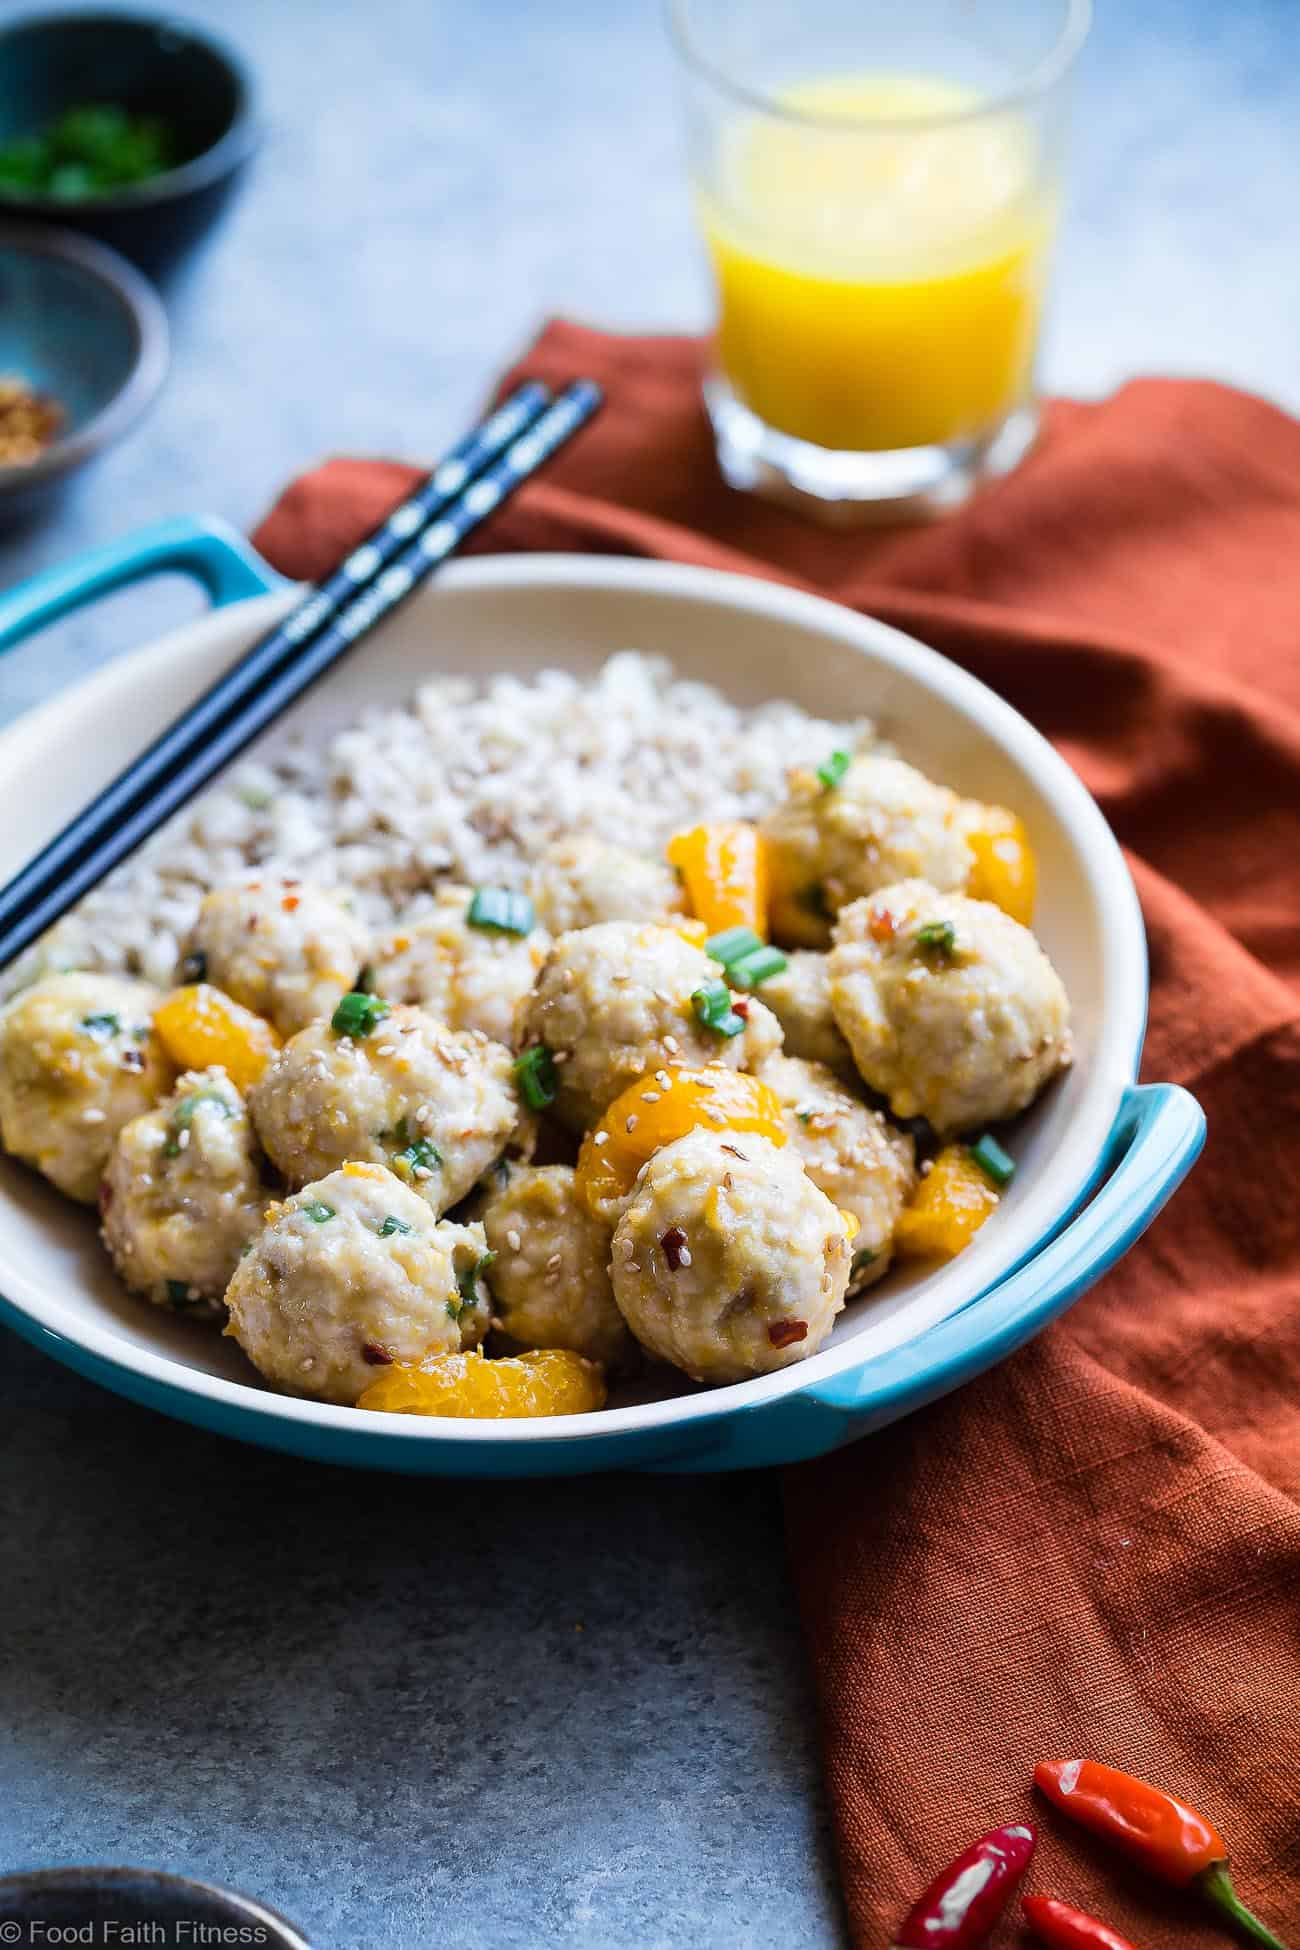 Orange Whole30 Turkey Paleo Meatballs - These easy, paleo friendly meatballs taste like Asian orange chicken in meatball form! They're a family friendly gluten/grain/dairy/sugar free weeknight meal, that's under 300 calories! You won't miss the deep frying! | #Foodfaithfitness | #paleo #whole30 #glutenfree #meatballs #healthy